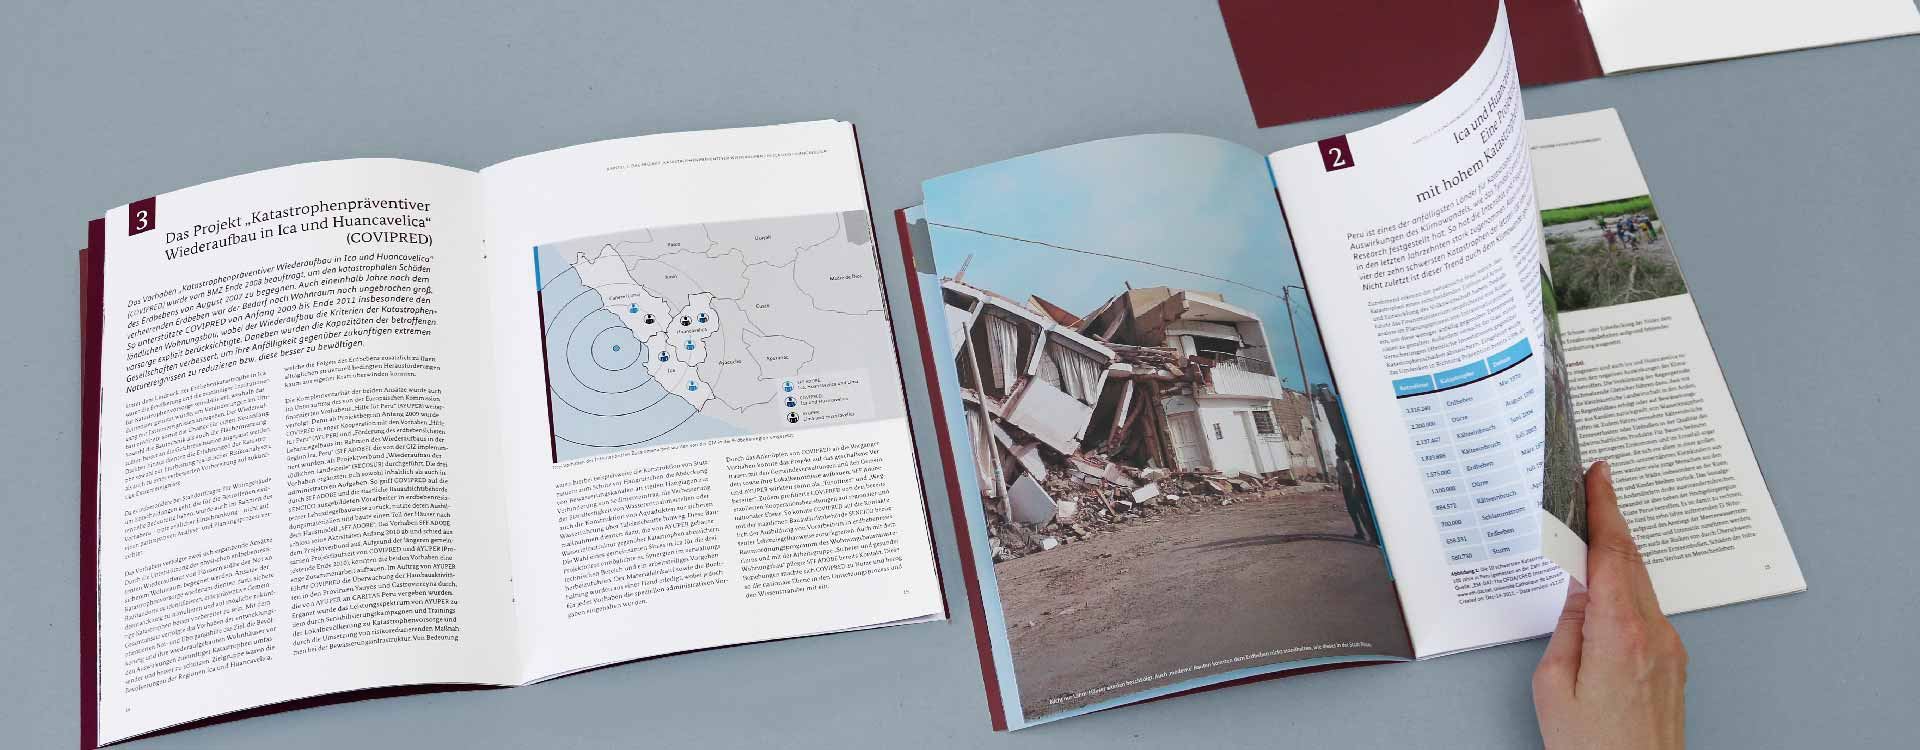 Inside pages of the brochure Disaster Preventive Reconstruction in Peru of the GIZ; Design: Kattrin Richter | Graphic Design Studio